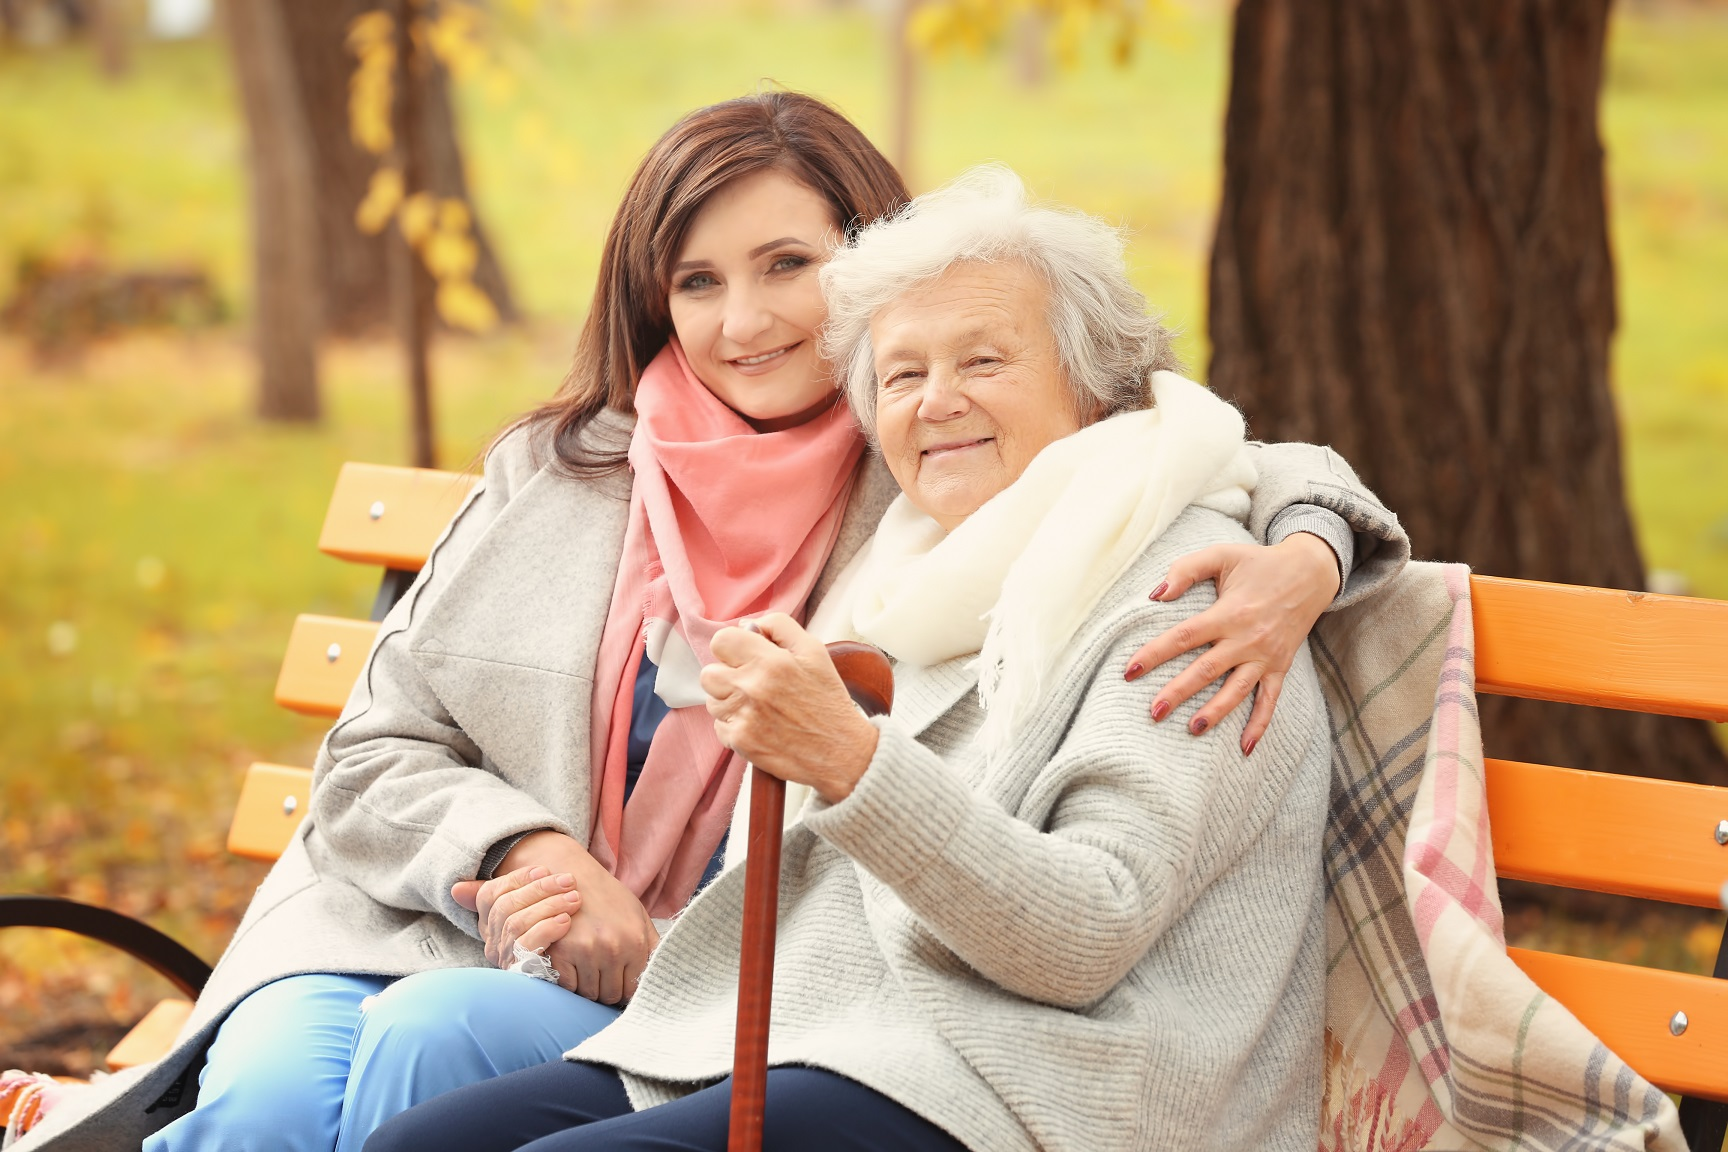 Daughter sitting with her elderly mother on a park bench.